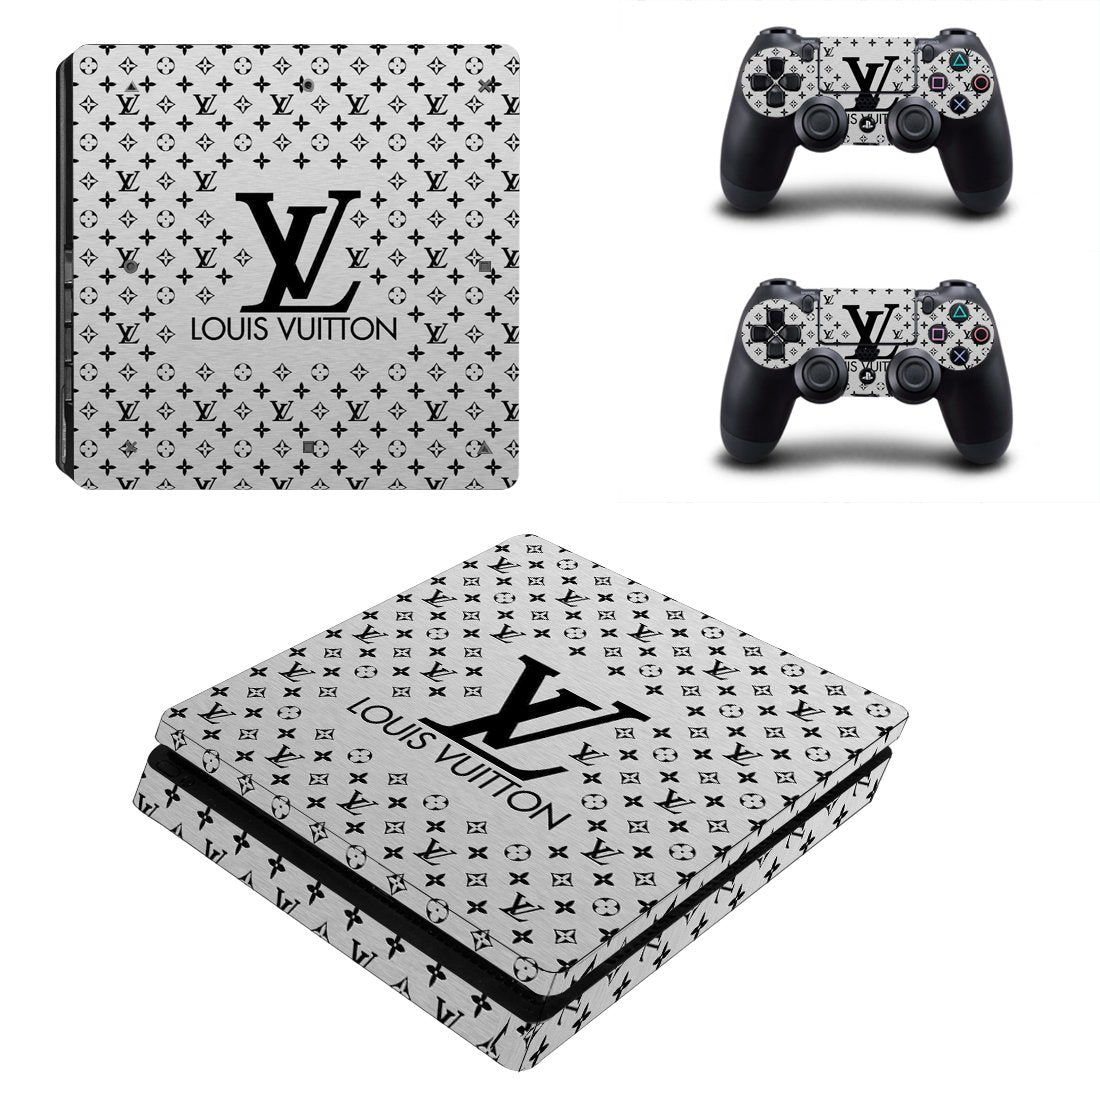 Louis Vuitton Monogram LV Silver PS4 Slim Skin Sticker Wrap